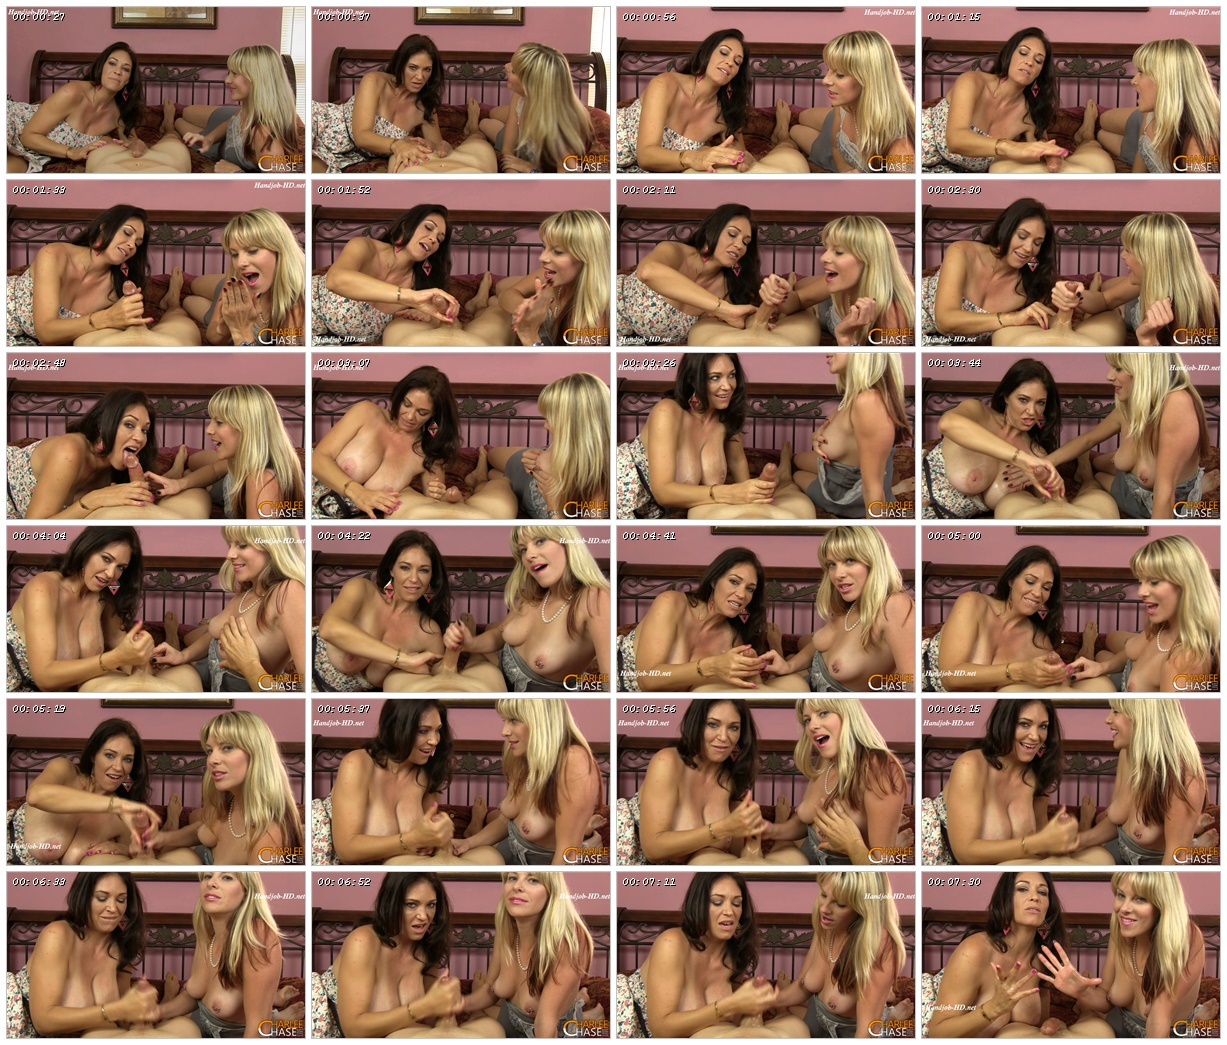 Charlee & Vicky POV Cock Jerkers – Charlees Adventures – Charlee Chase, Vicky Vixxx_scrlist